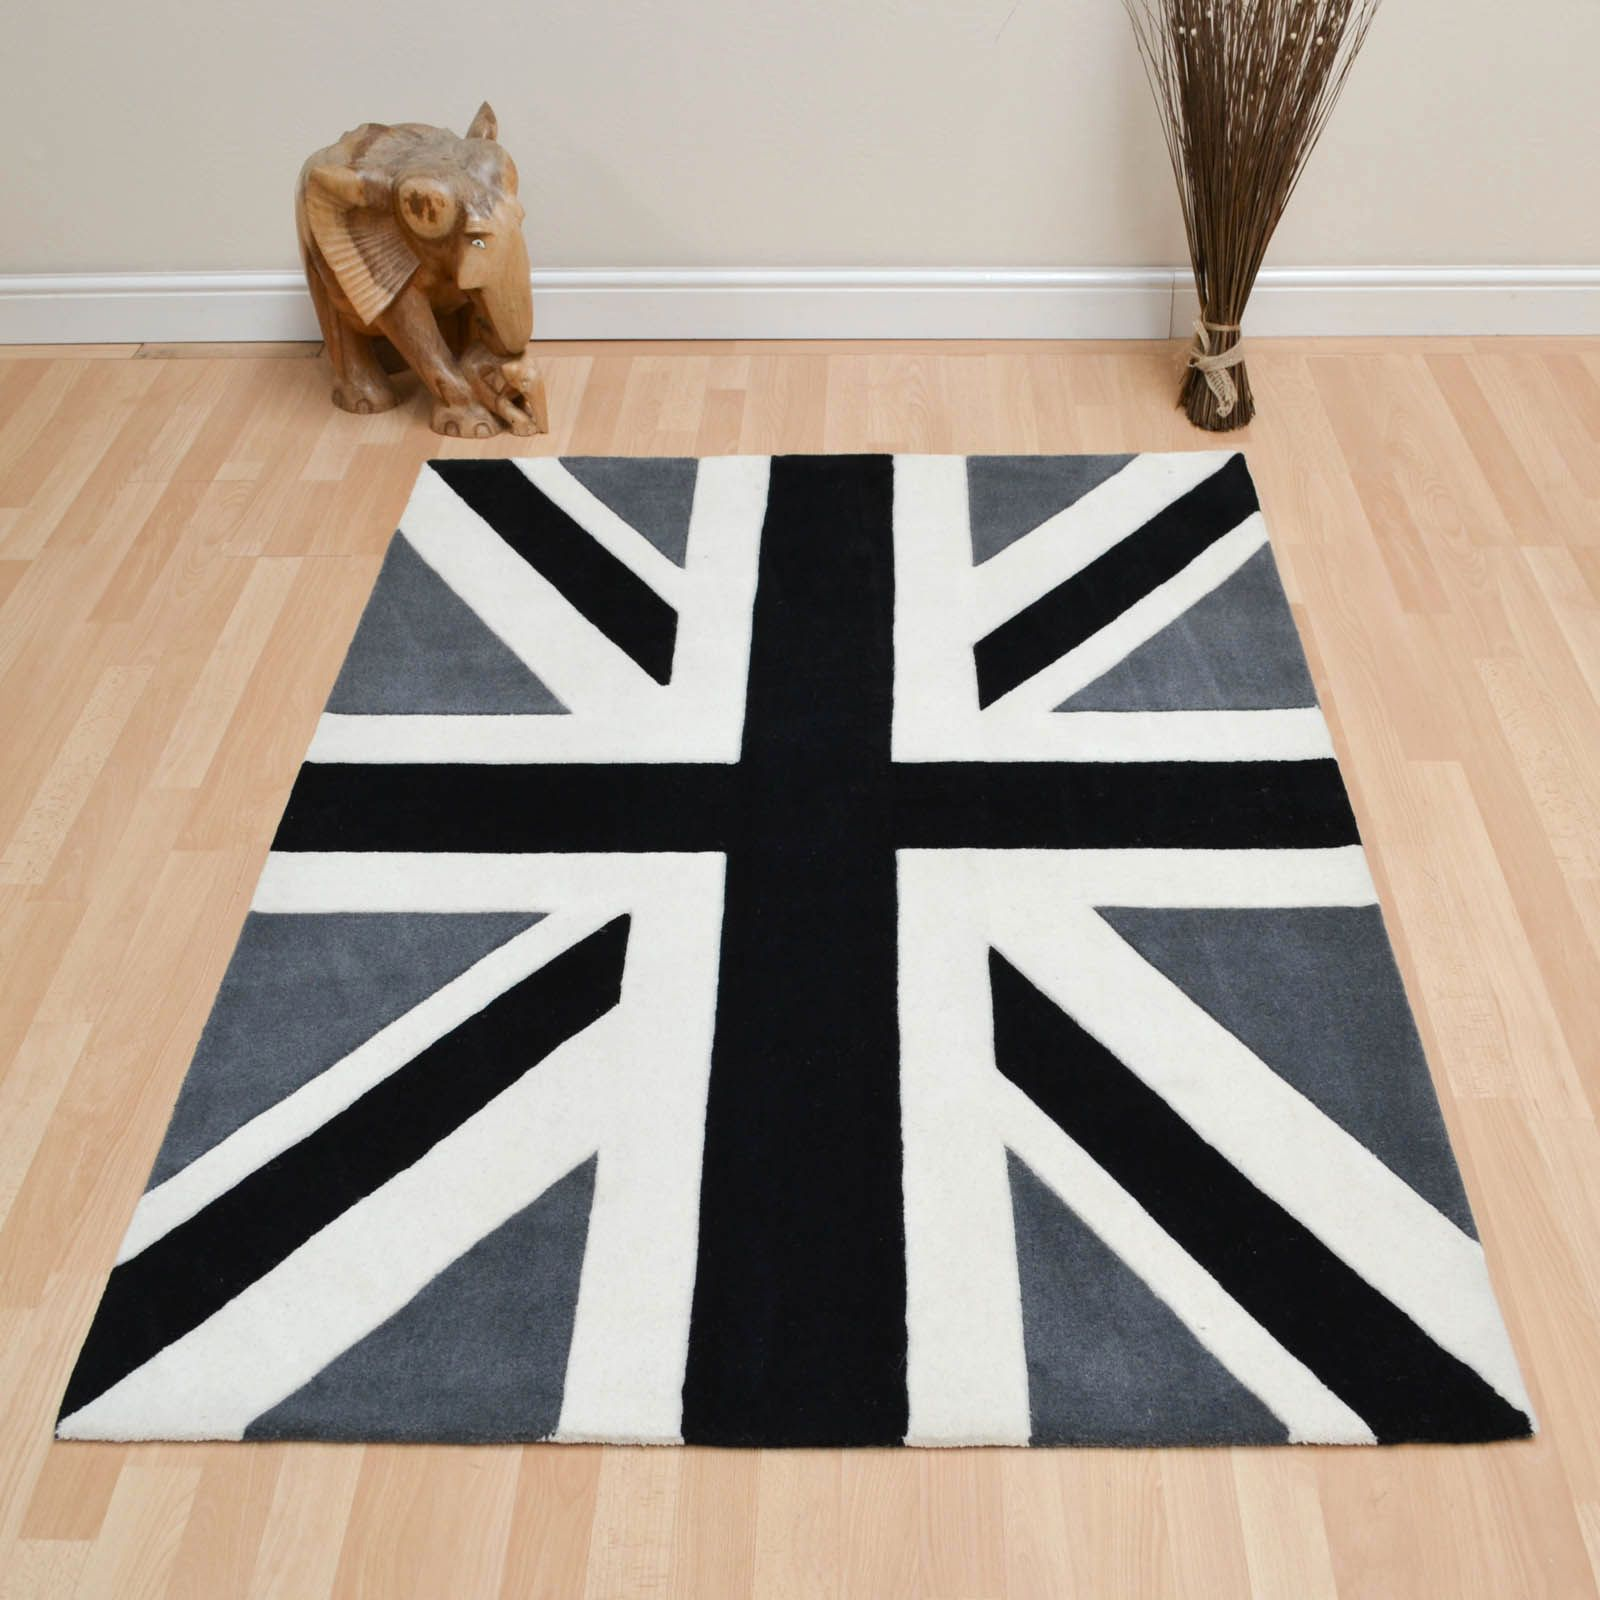 Union Jack Vintage Wool Rugs In Black